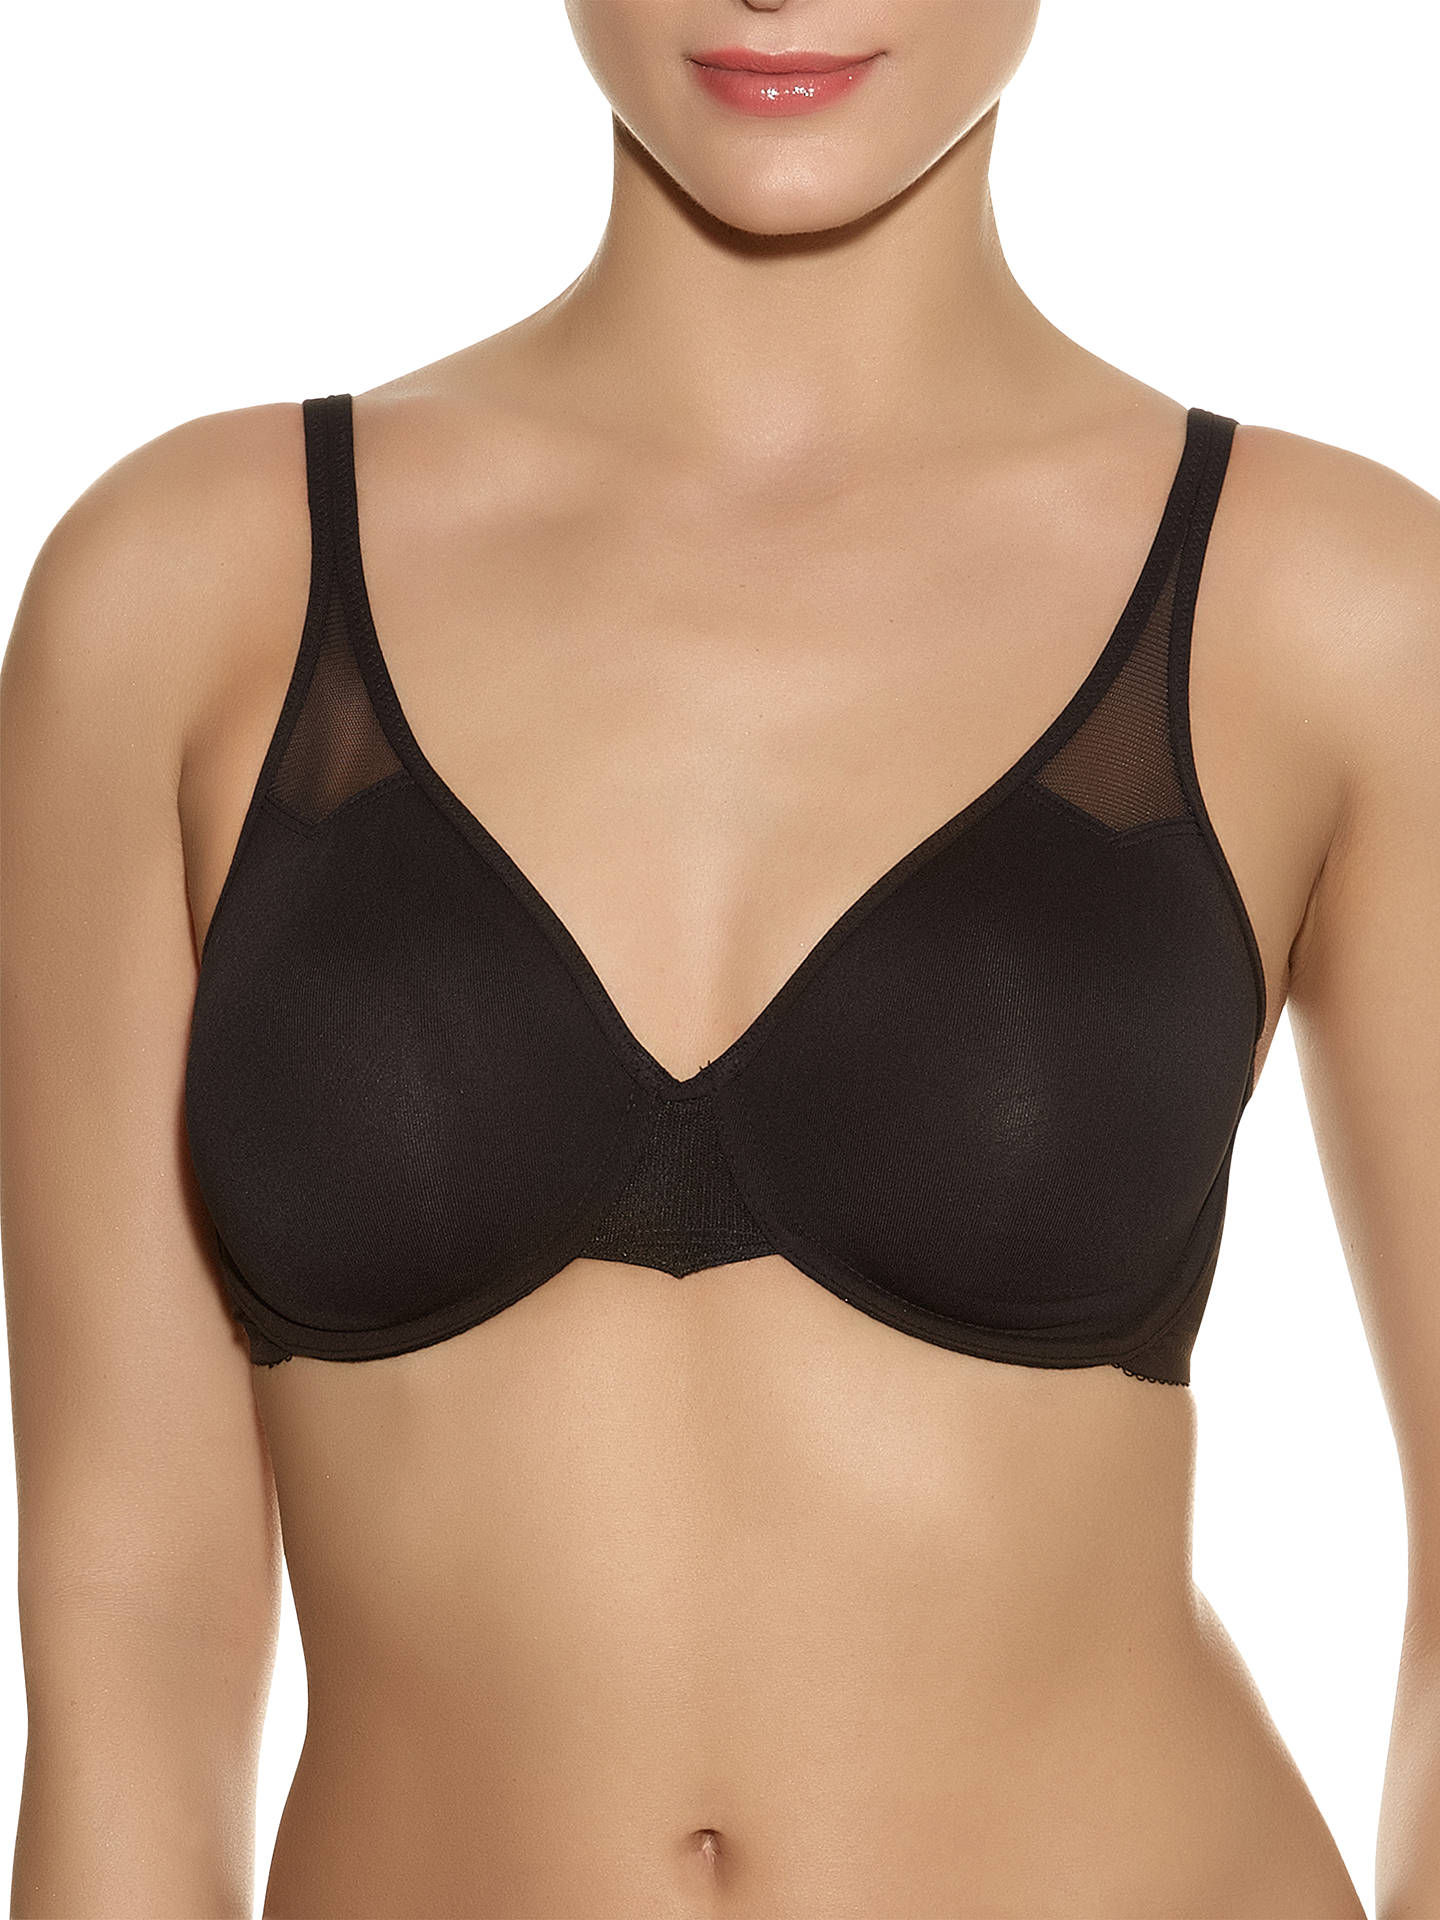 06dbbf4879 Wacoal Body by Seamless Underwired Bra at John Lewis   Partners